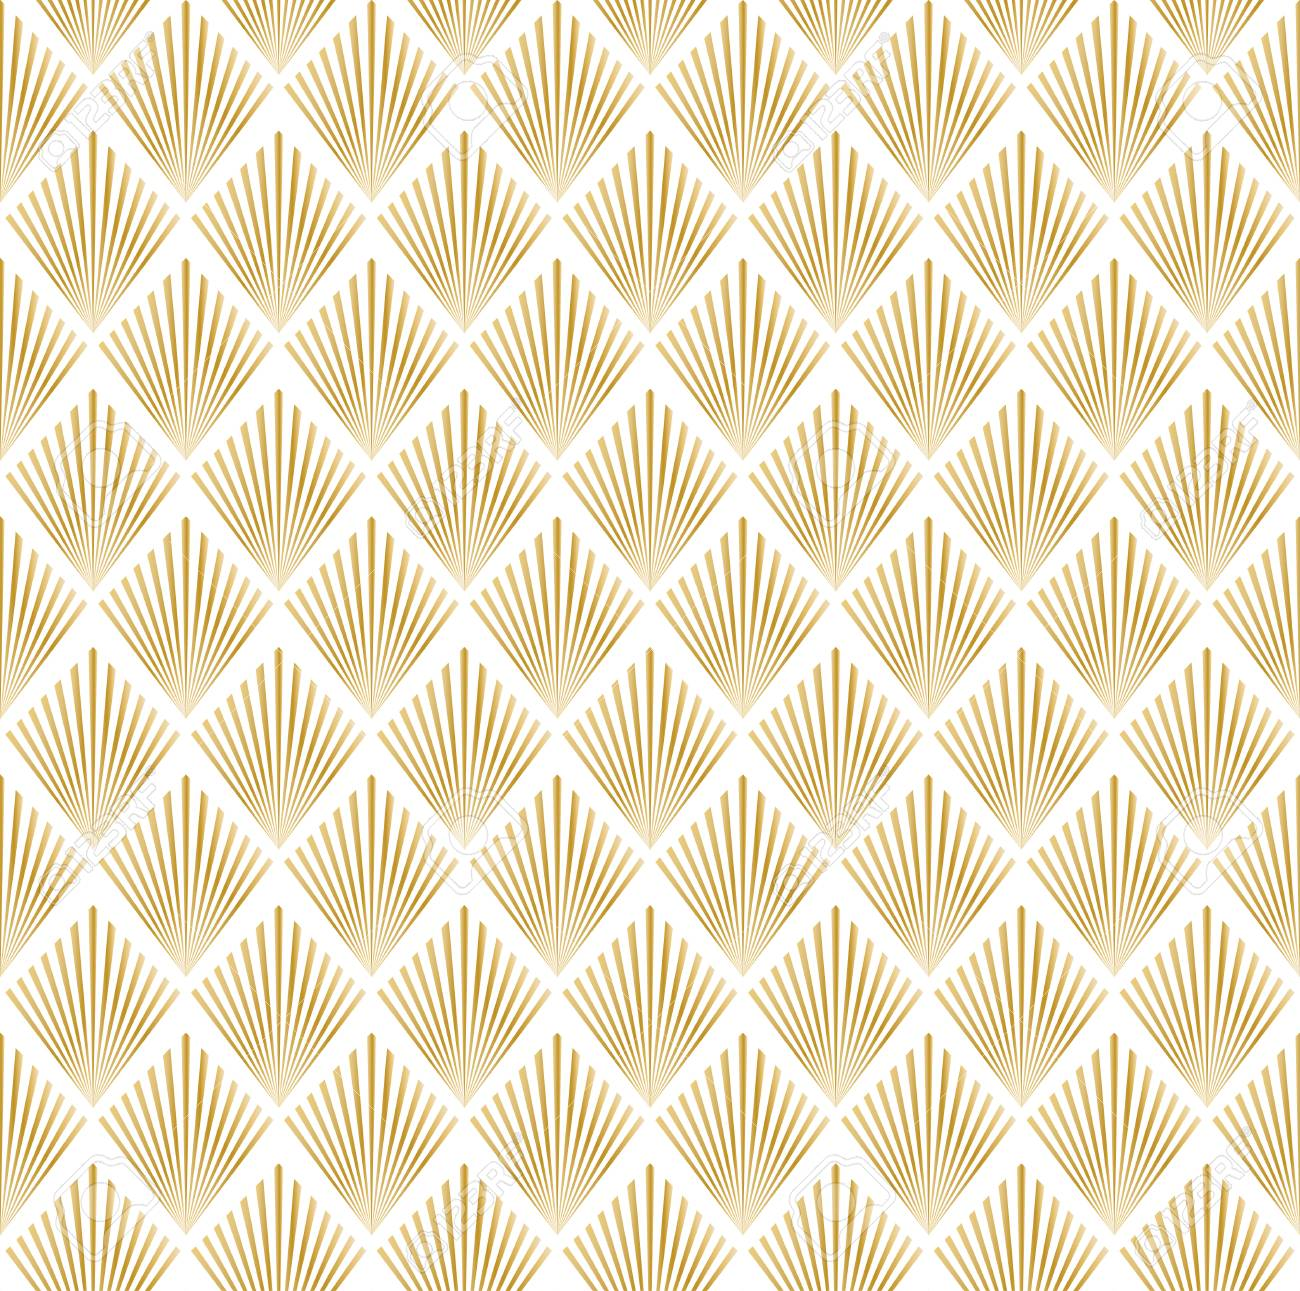 illustration of golden and white seamless pattern in art deco style - 55259885